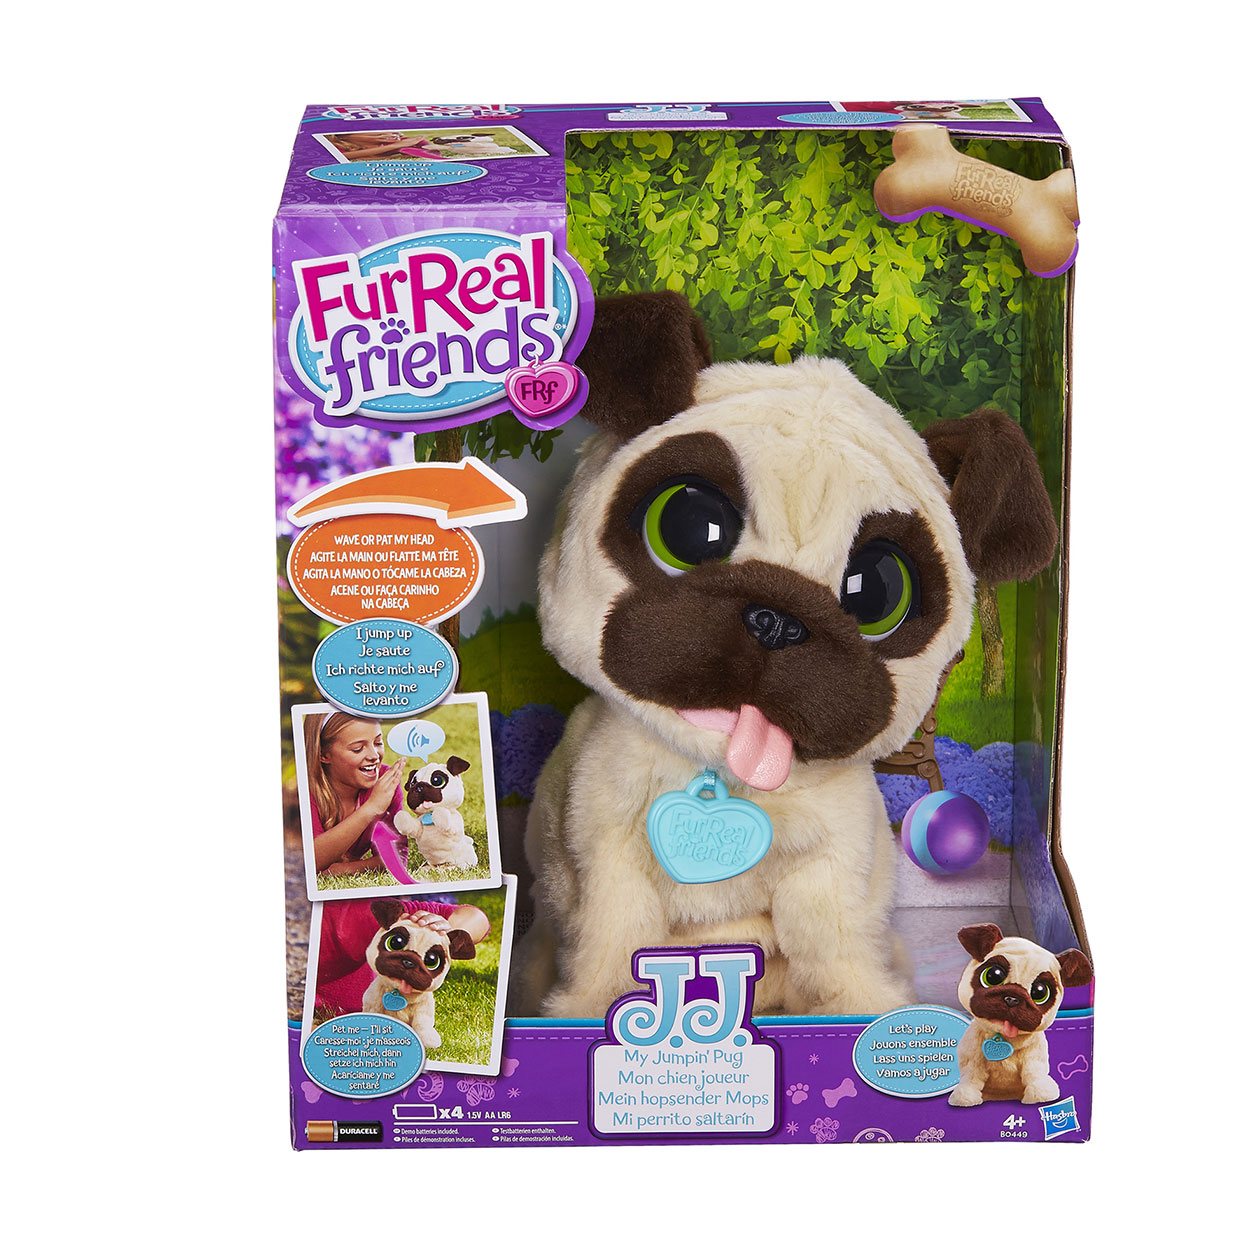 Fur Real Friends Jj My Jumping Pug Fur Real Friends Pet Toys Little Live Pets